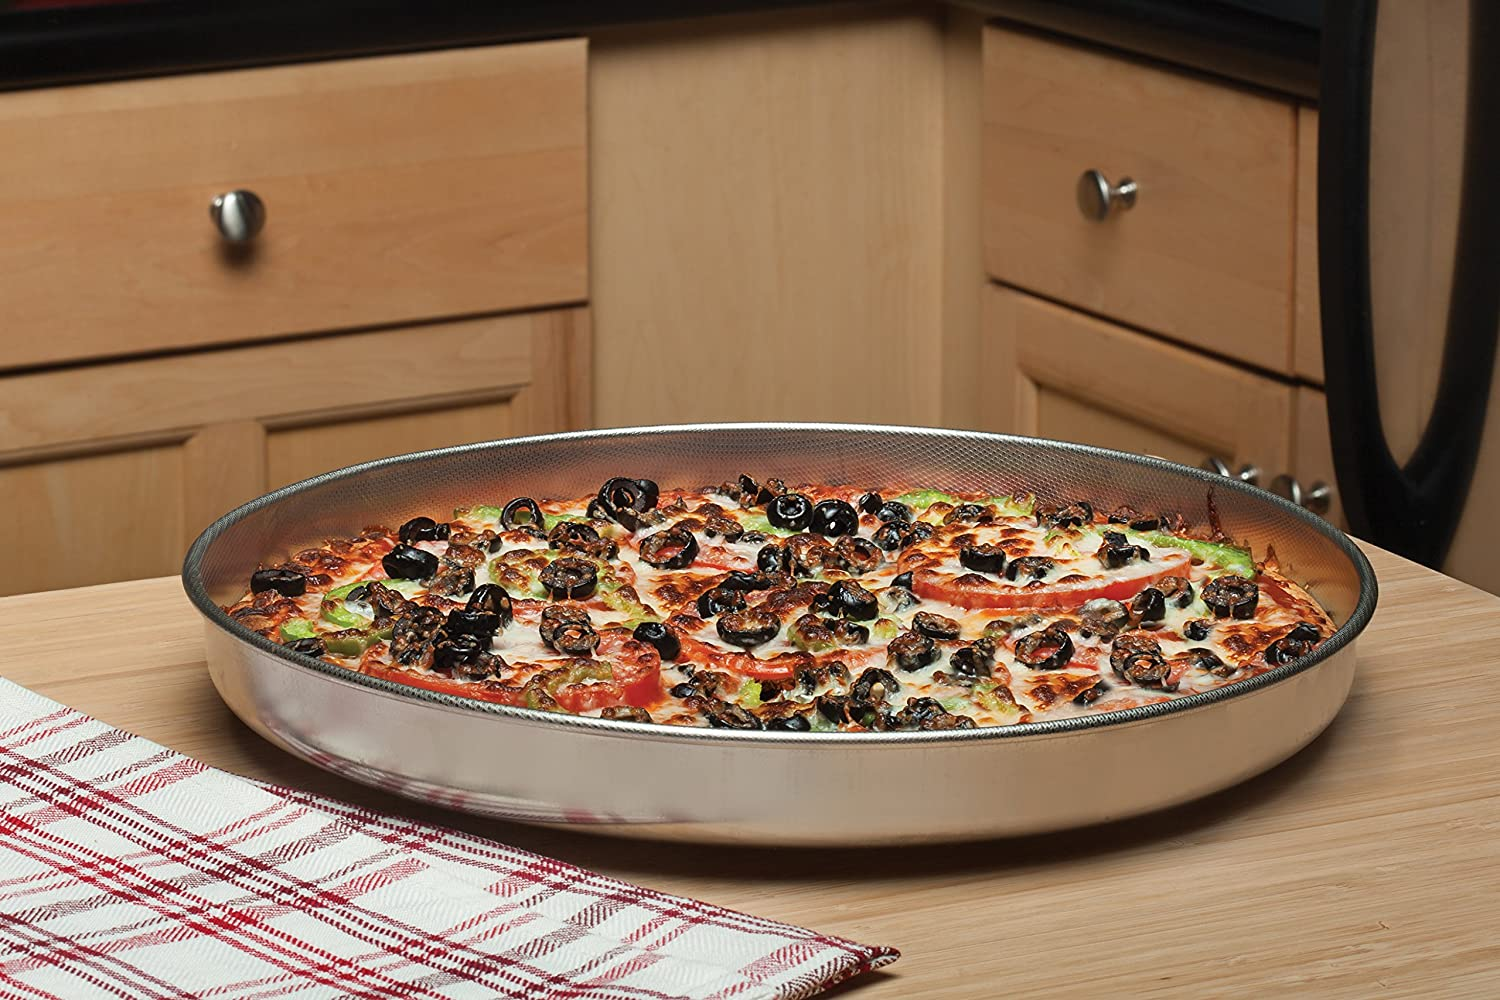 The I Silver Fante/'s Fantes 20406 FBA/_1294440 Micro-Textured Pizza Pan 18//10 Stainless Steel 13-Inch